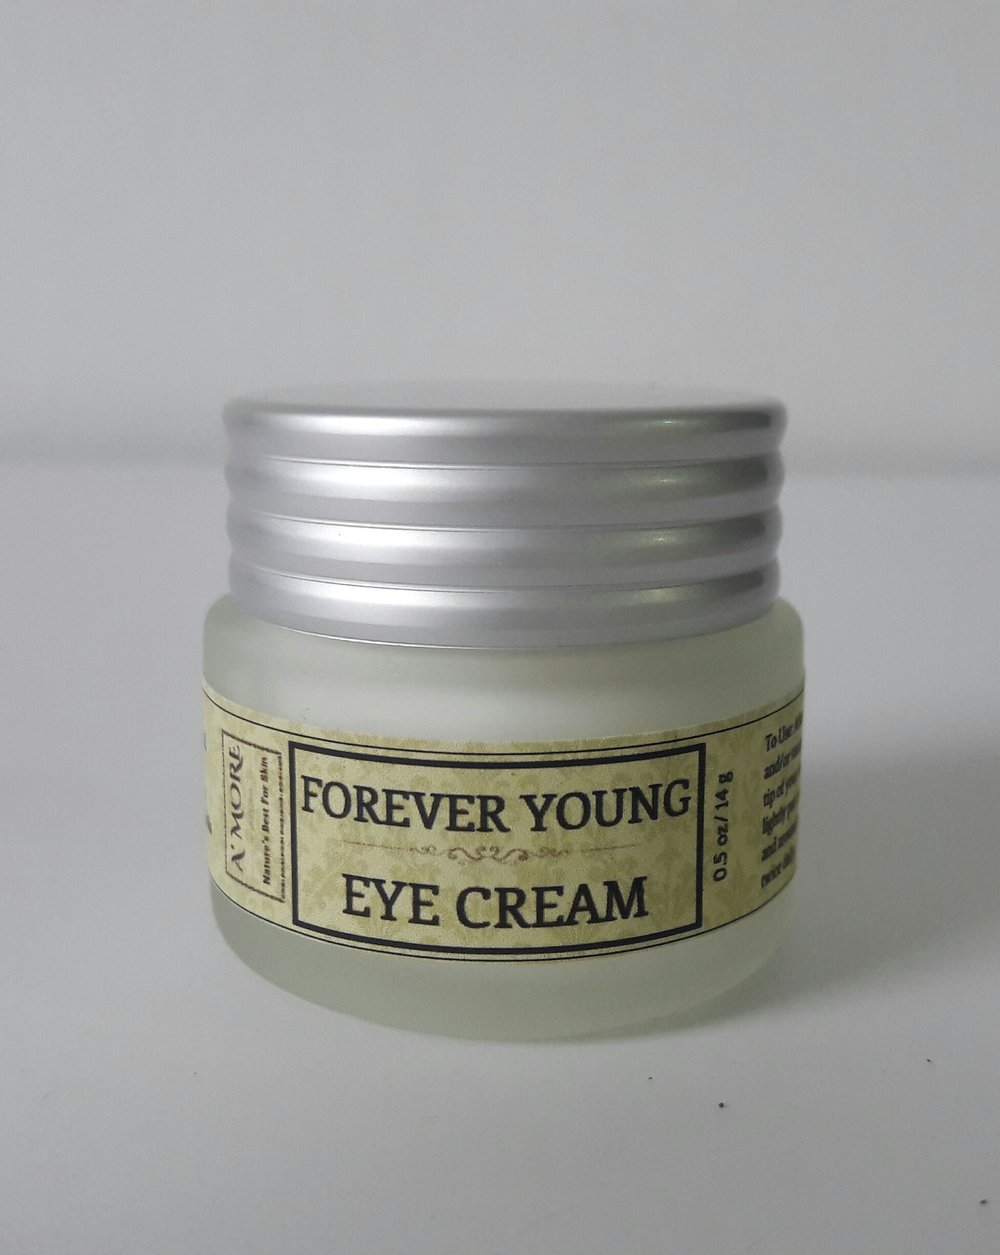 Image A'More Eye Cream Forever Young frontal view.jpg